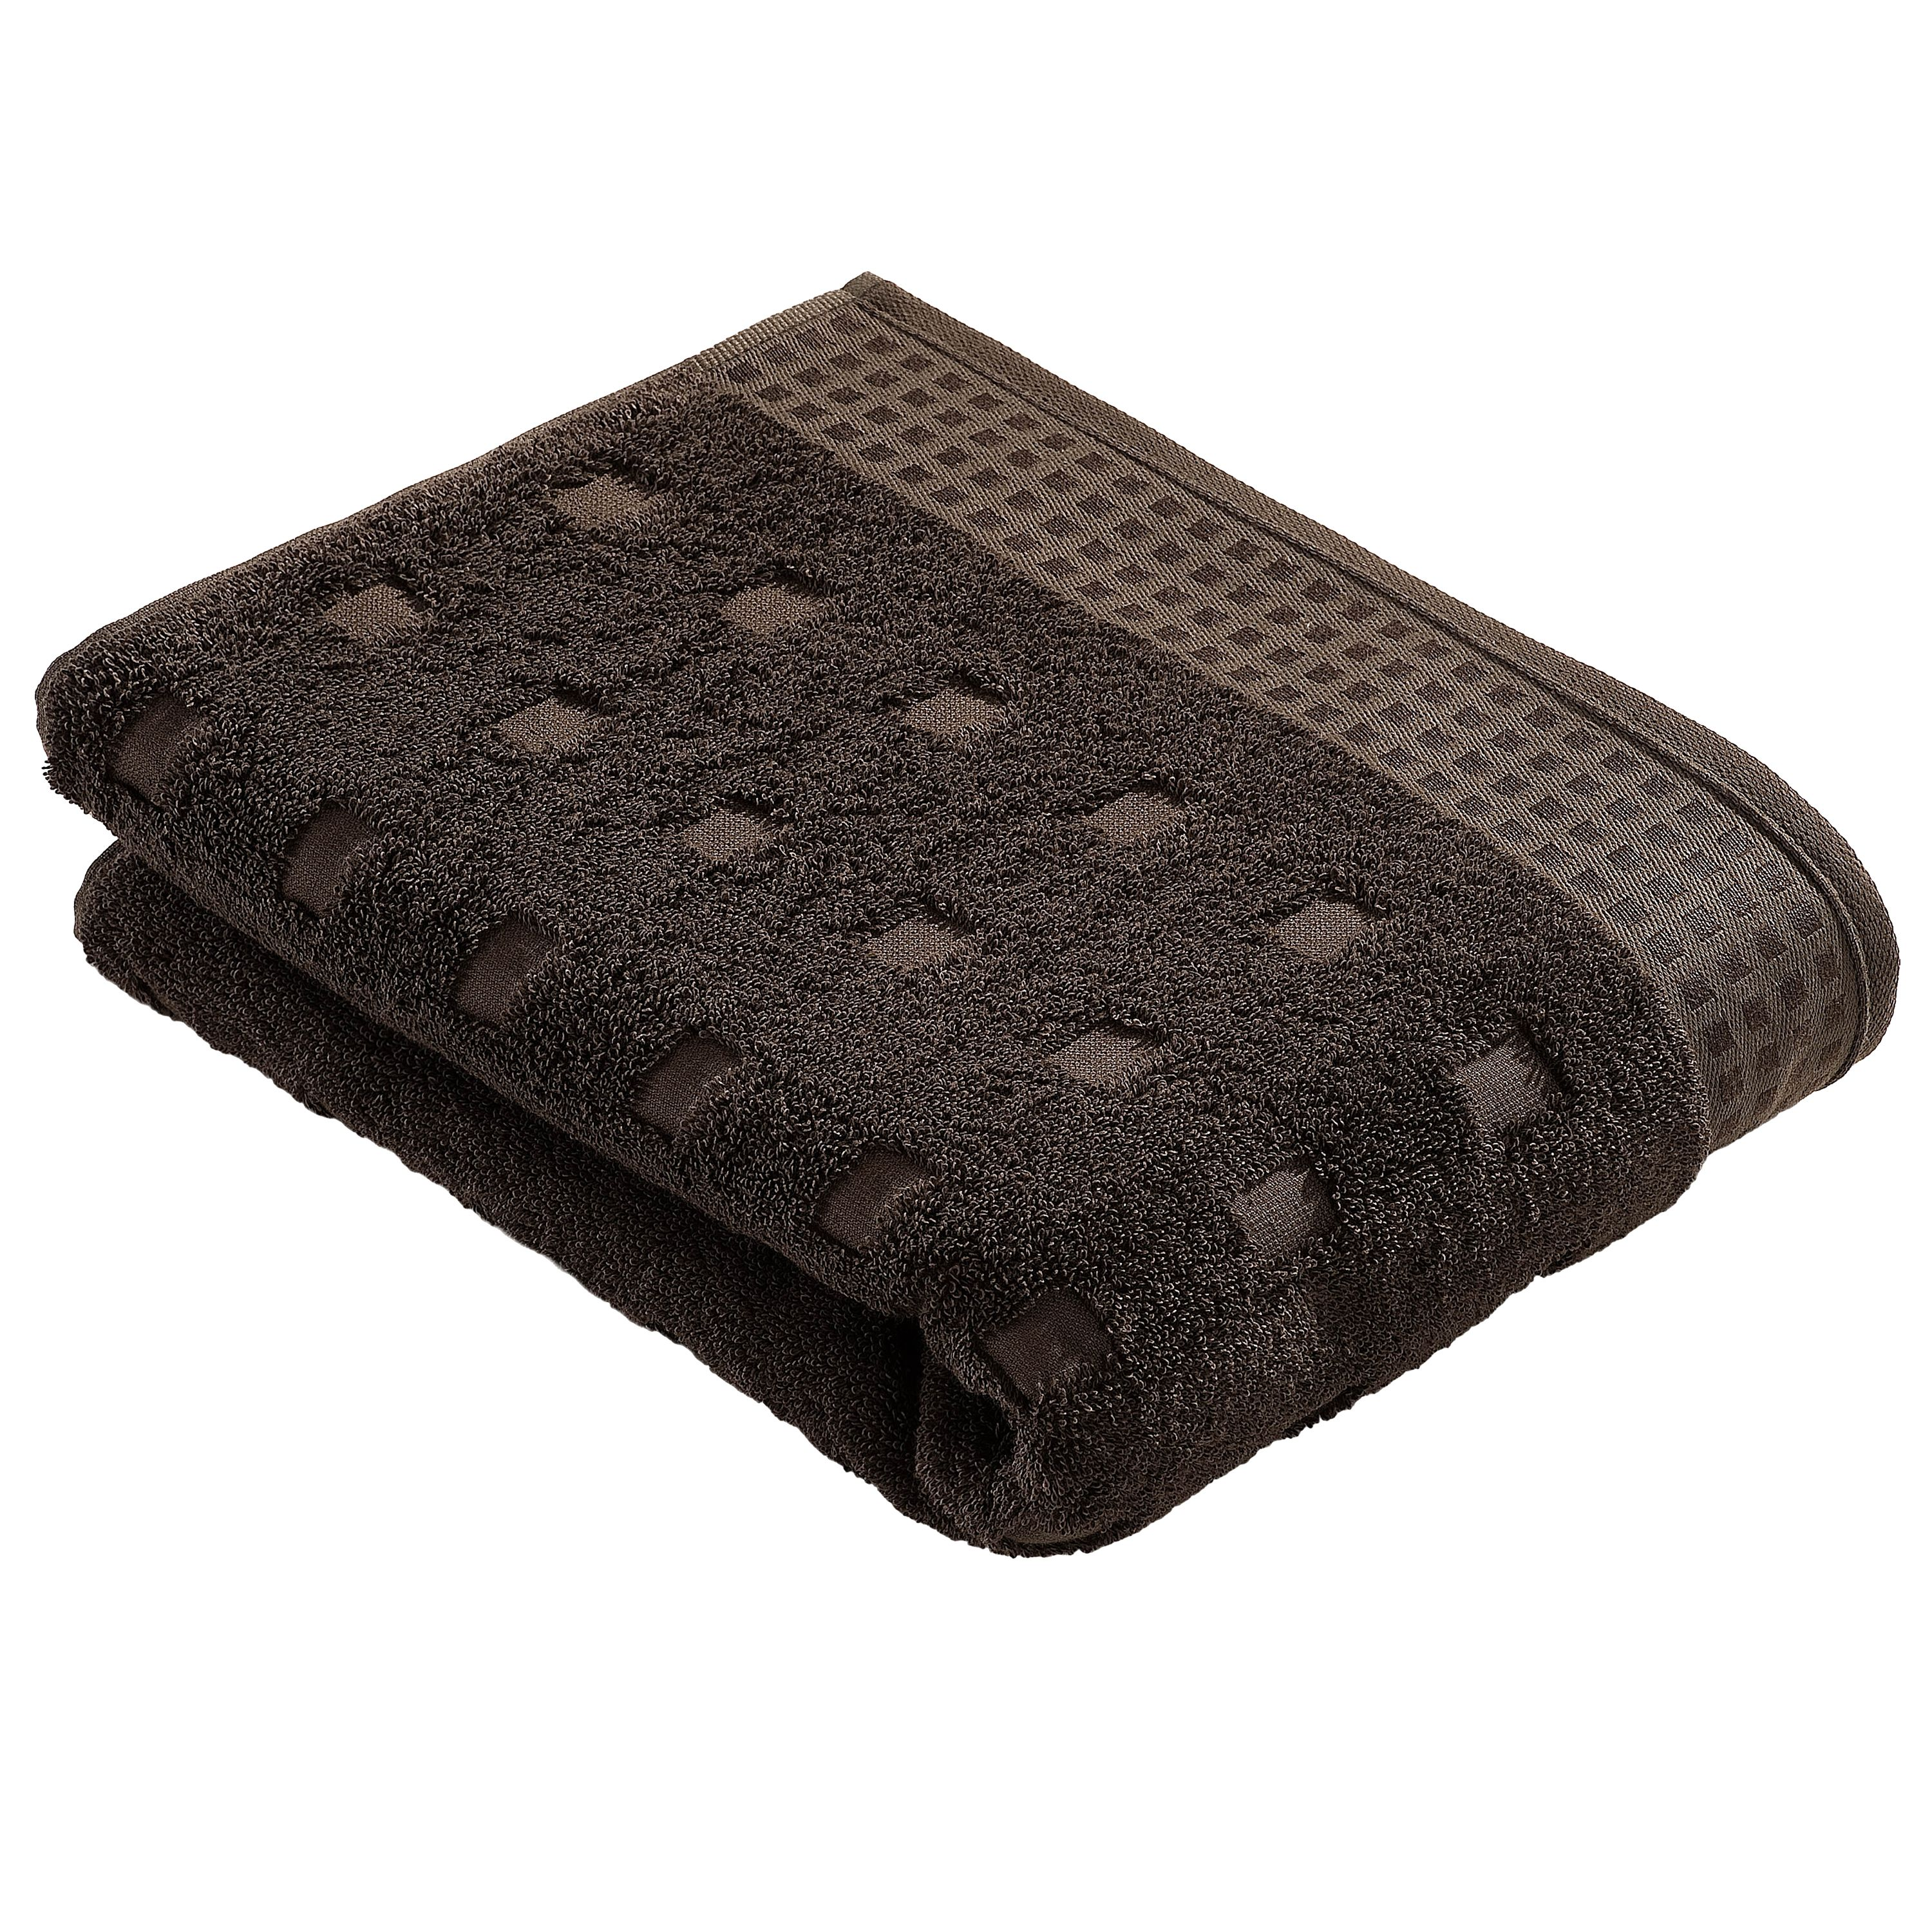 Country style  towels in slate grey